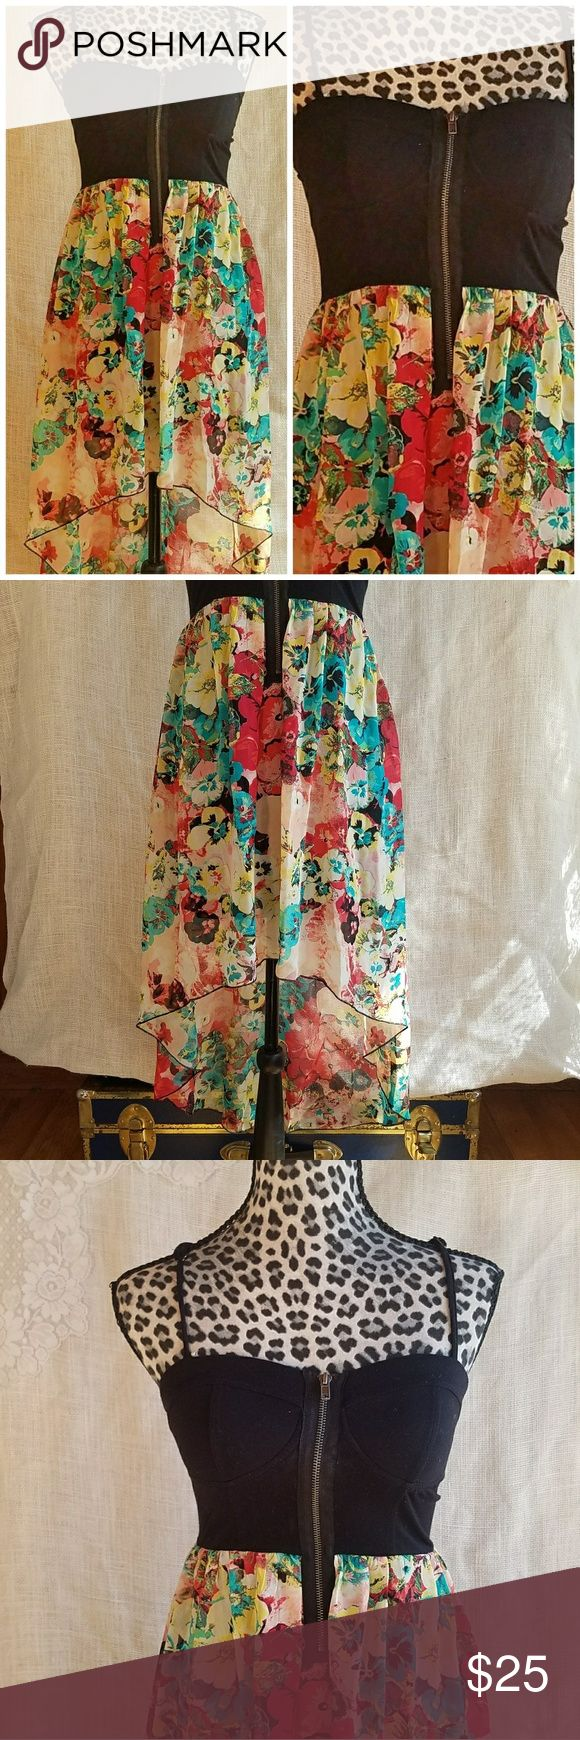 ???? Floral Zip Up Hi Low Summer Dress sz Small Super cute floral high low dress with zip up bodice. Top is stretchy knit, bottom is sheer and flowy. Size small. Material Girl Dresses High Low